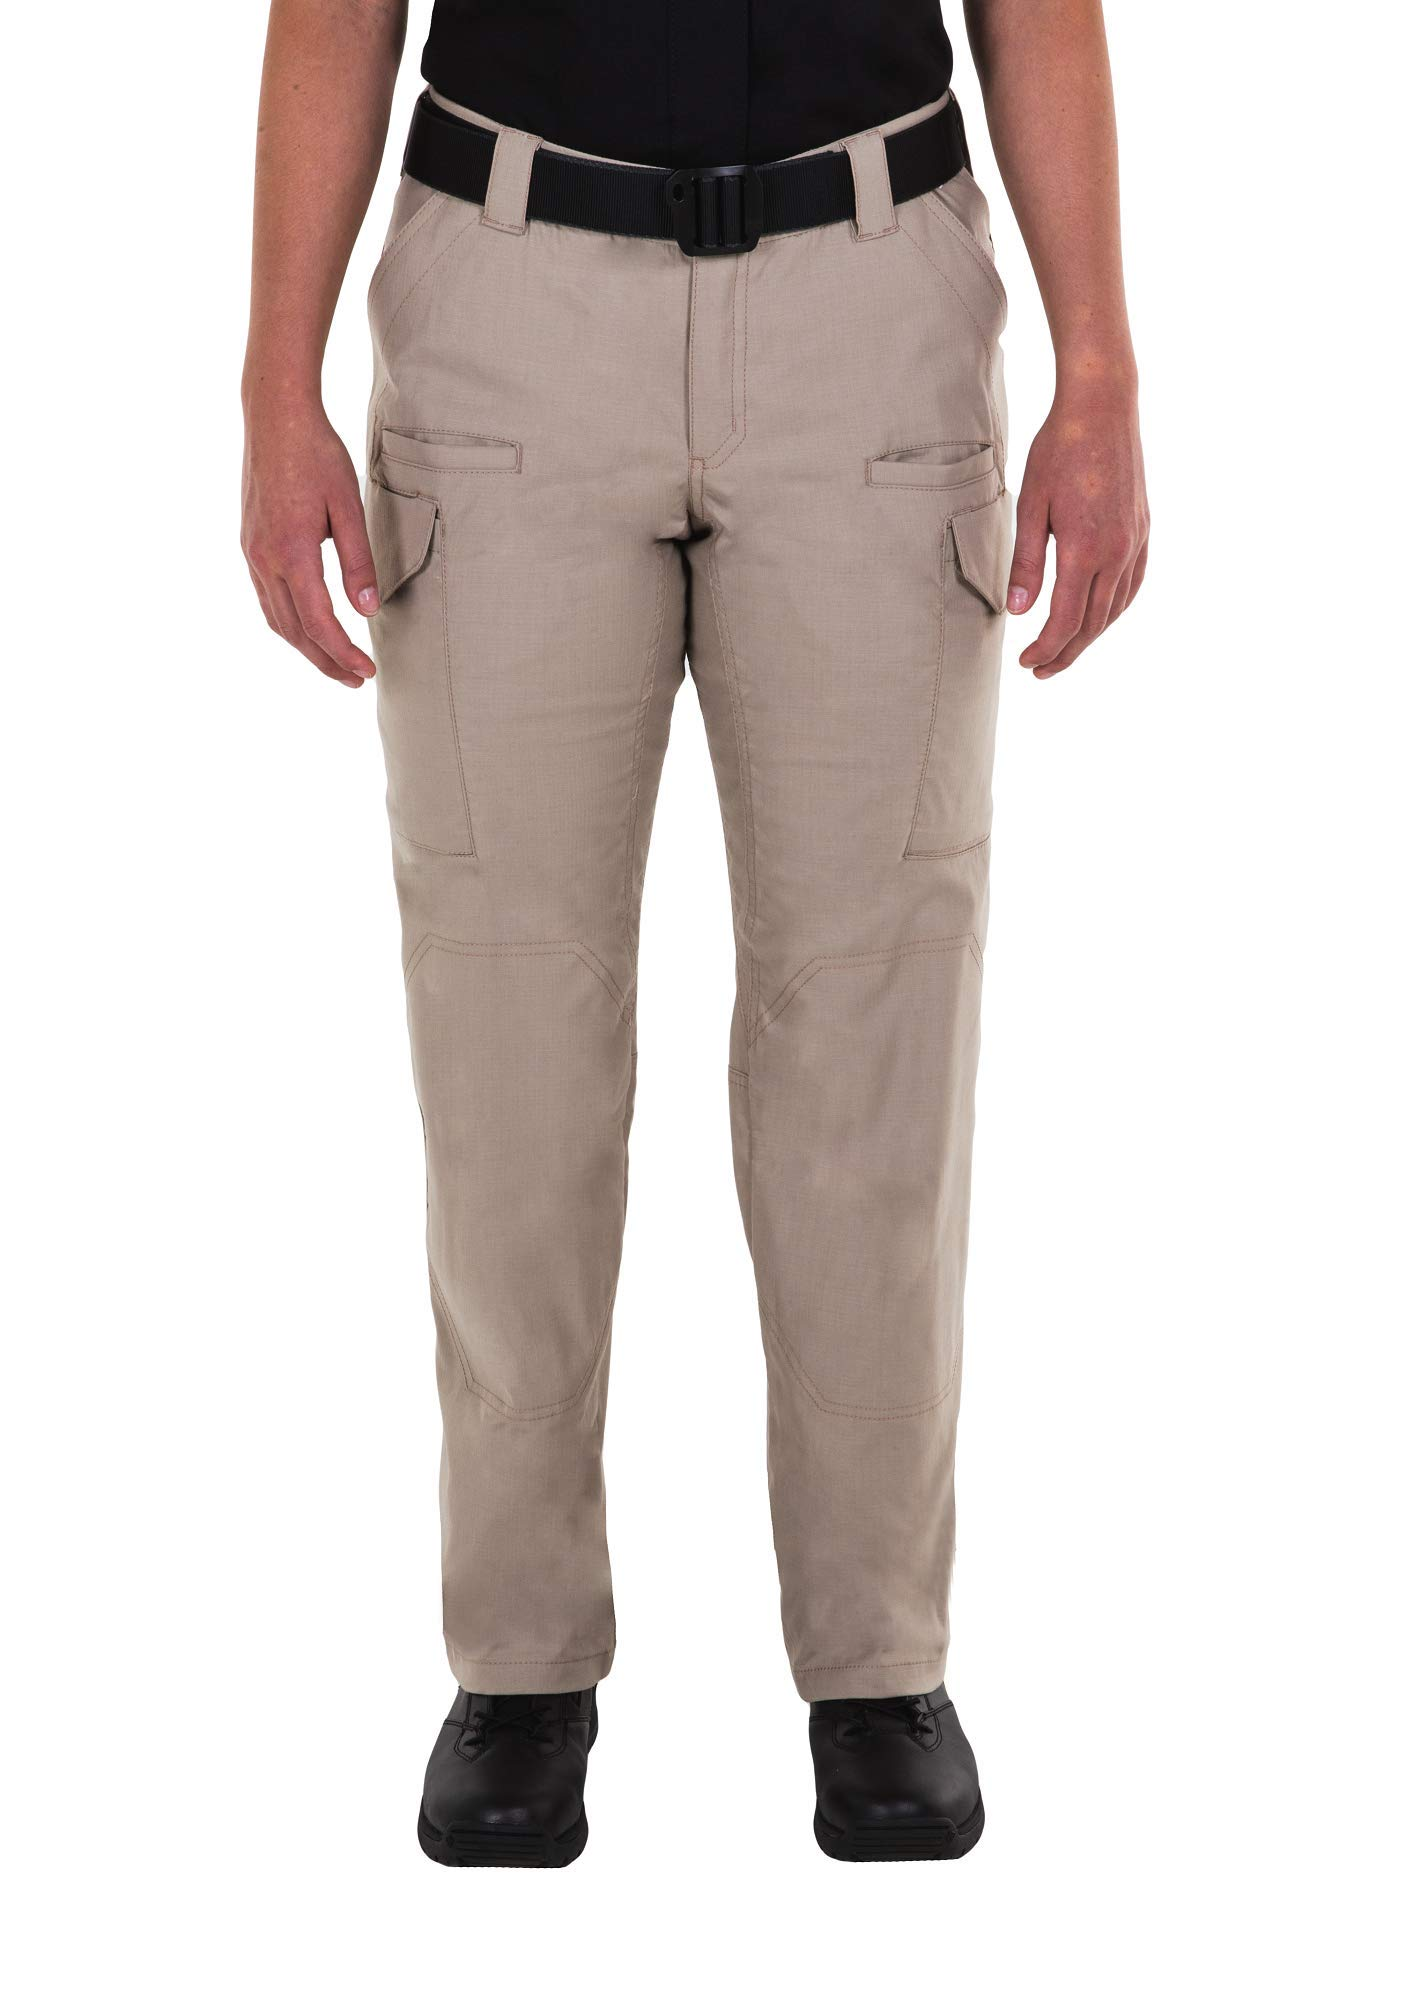 First Tactical V2 Women's Tactical Pant | Micro Ripstop Fabric with Teflon Shield Stain Repellent